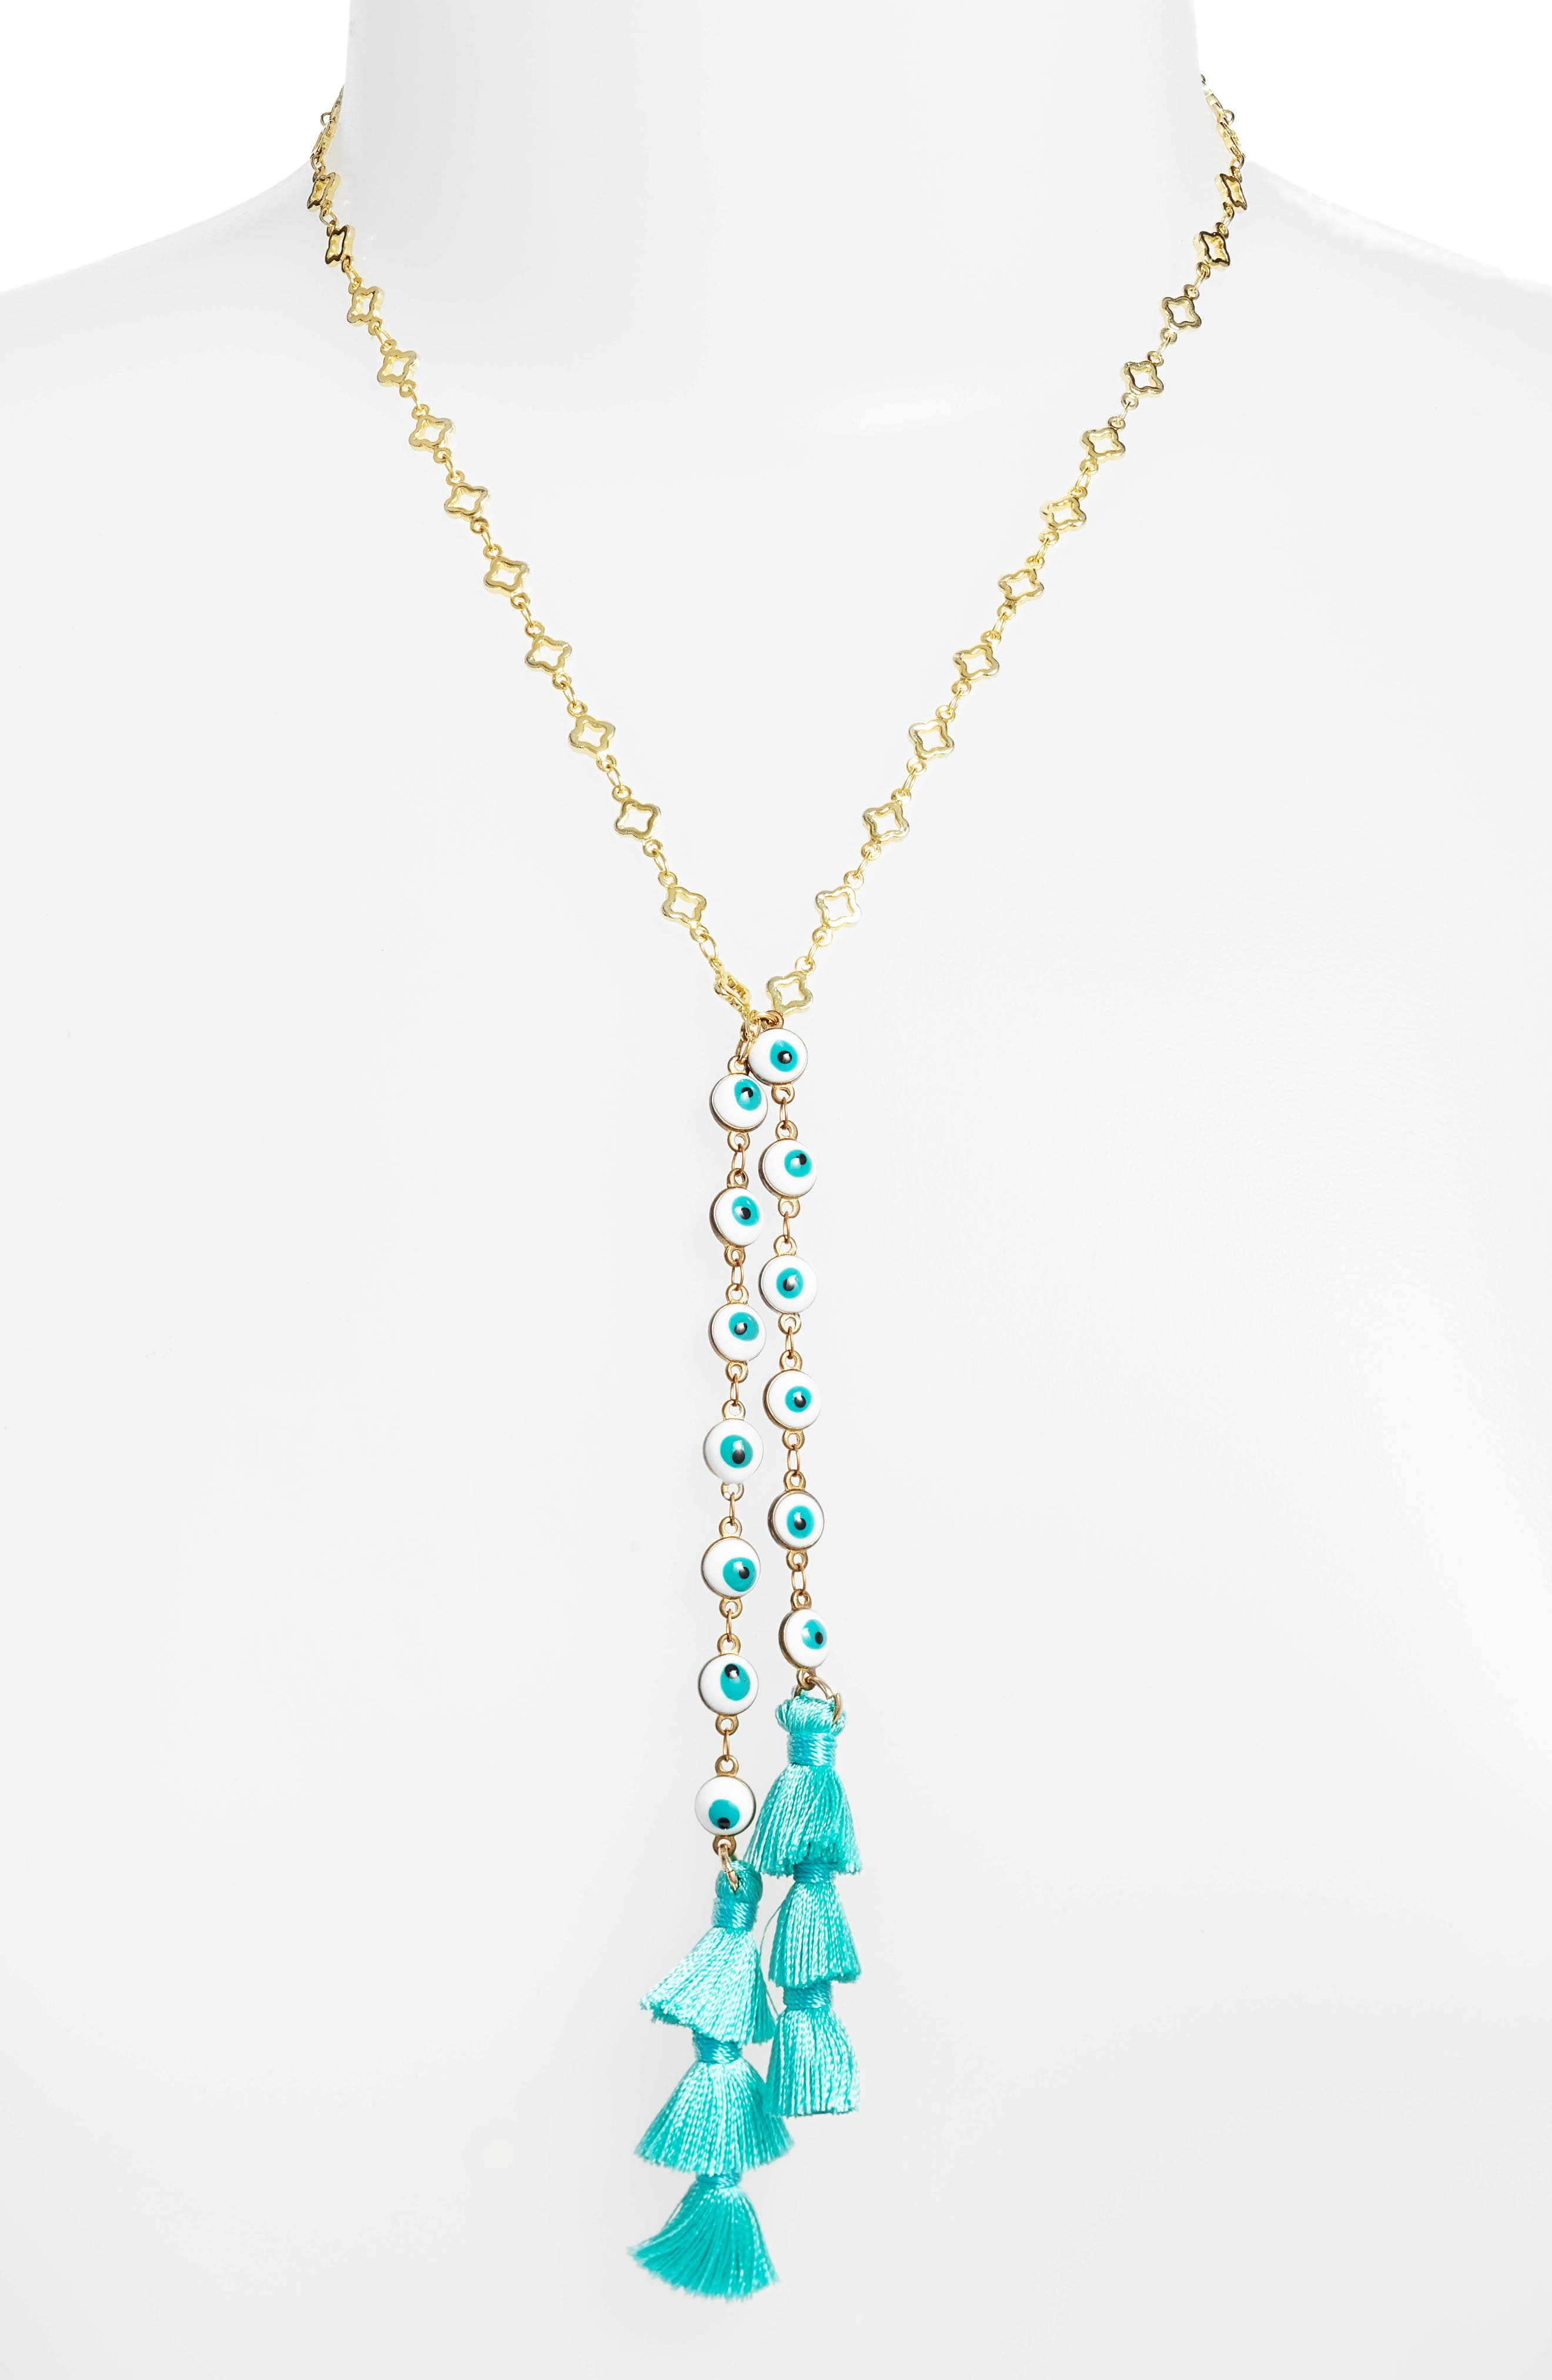 Trieste Bolo Necklace,                         Main,                         color, Gold/ Teal